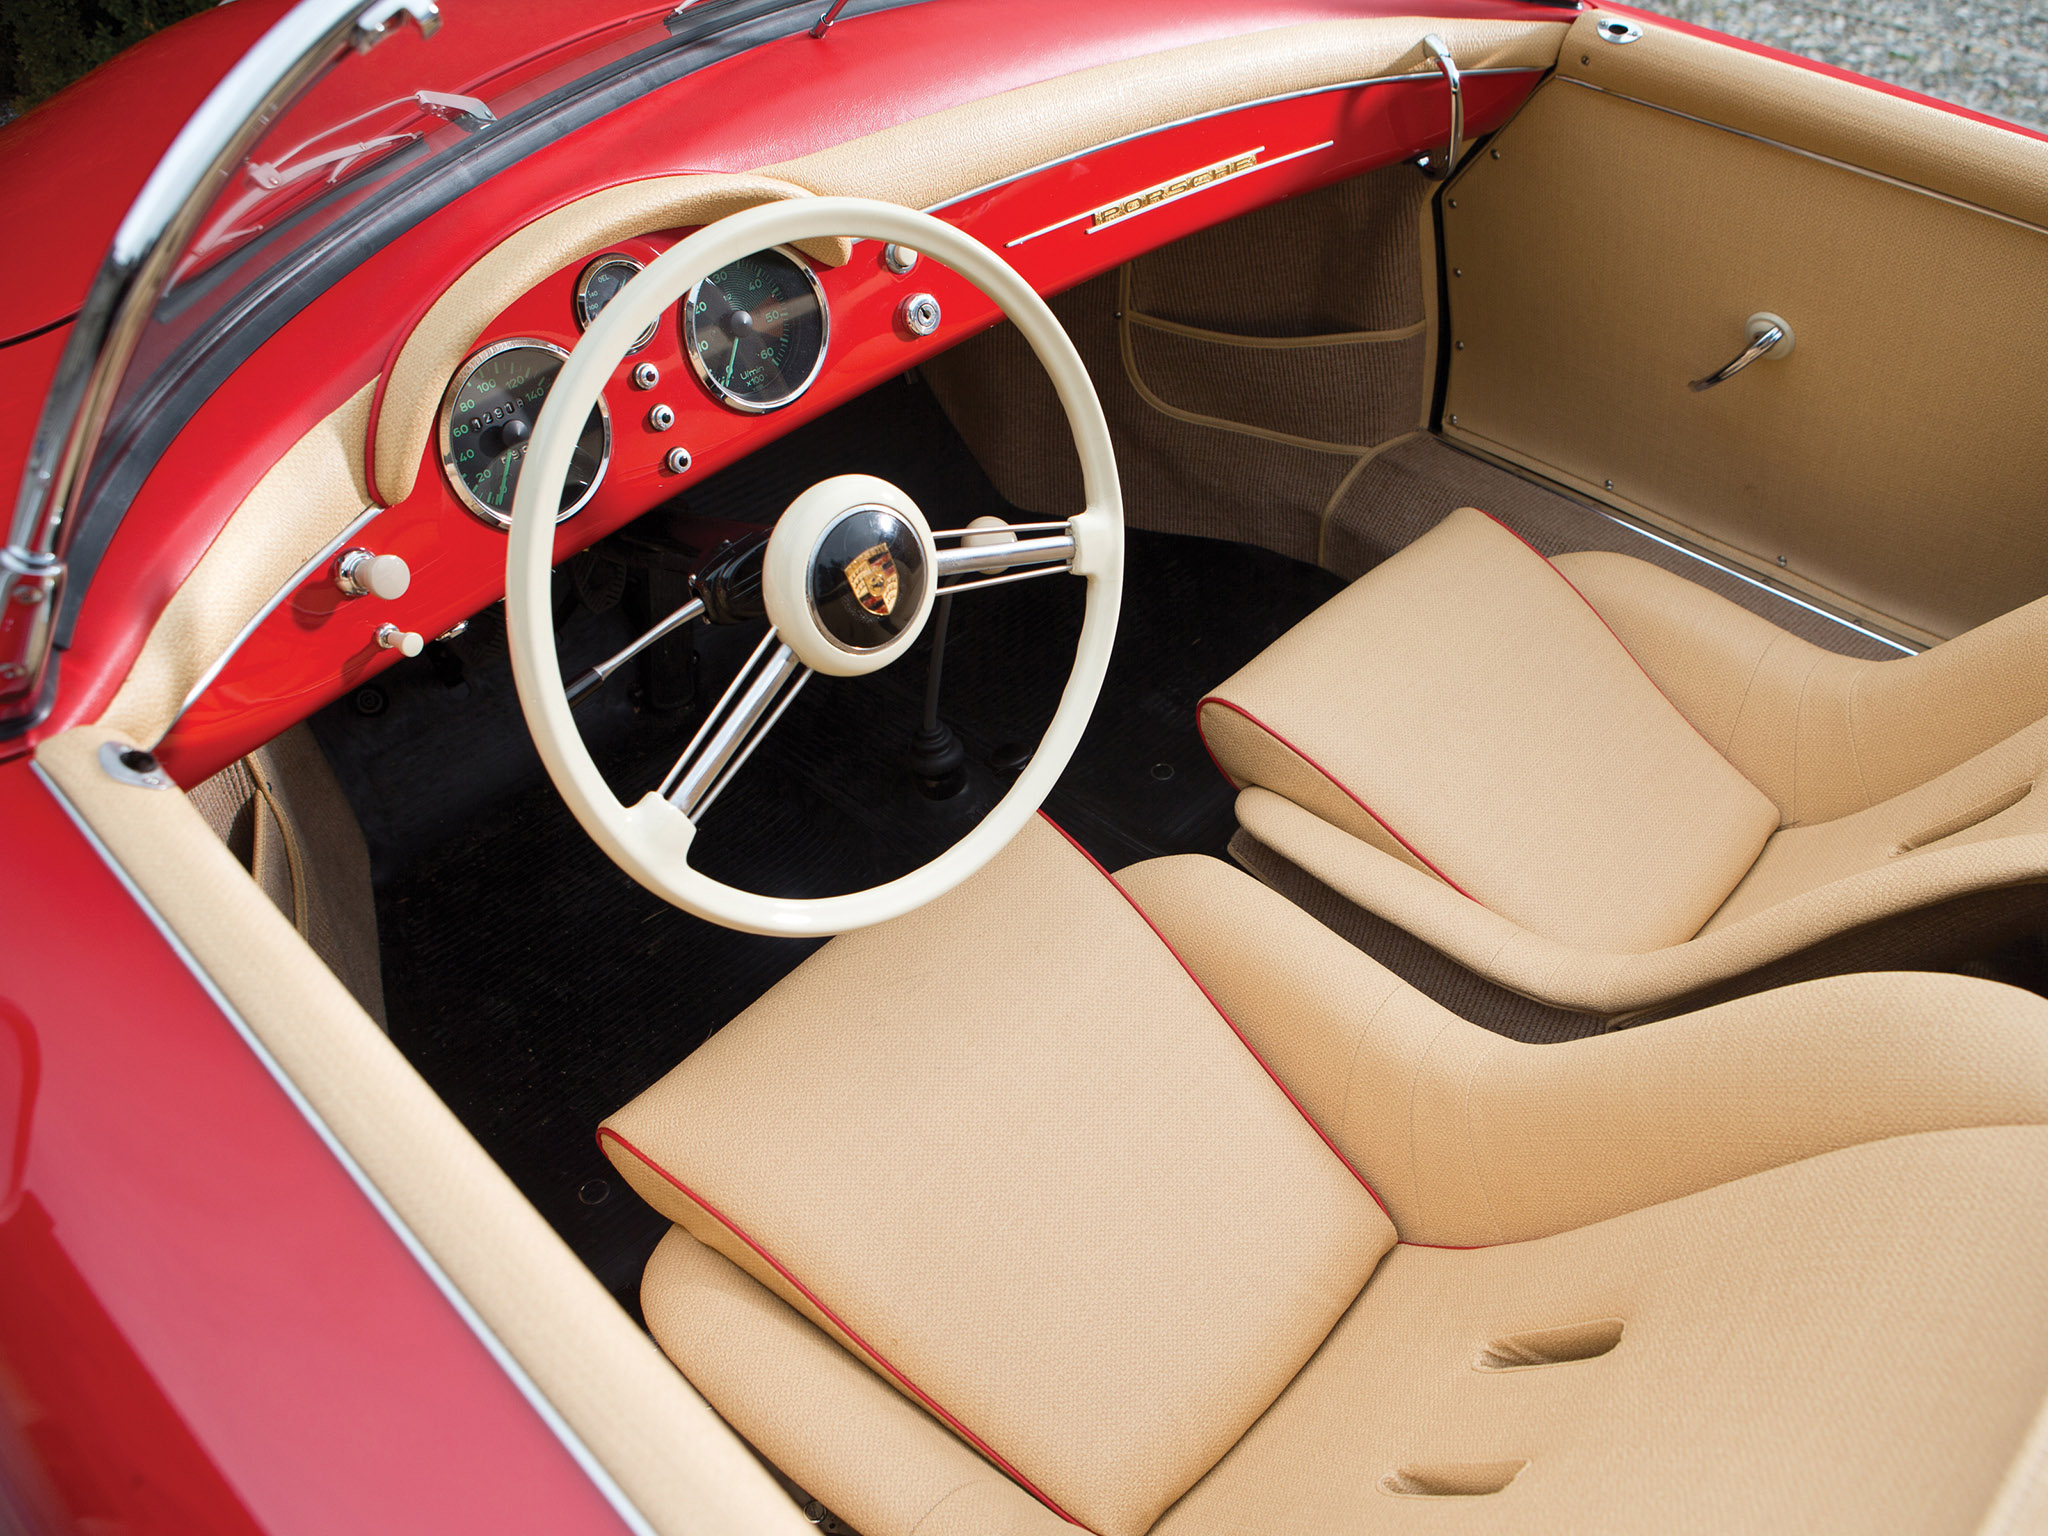 1955 Porsche 356 Speedster retro supercar supercars interior wallpaper background